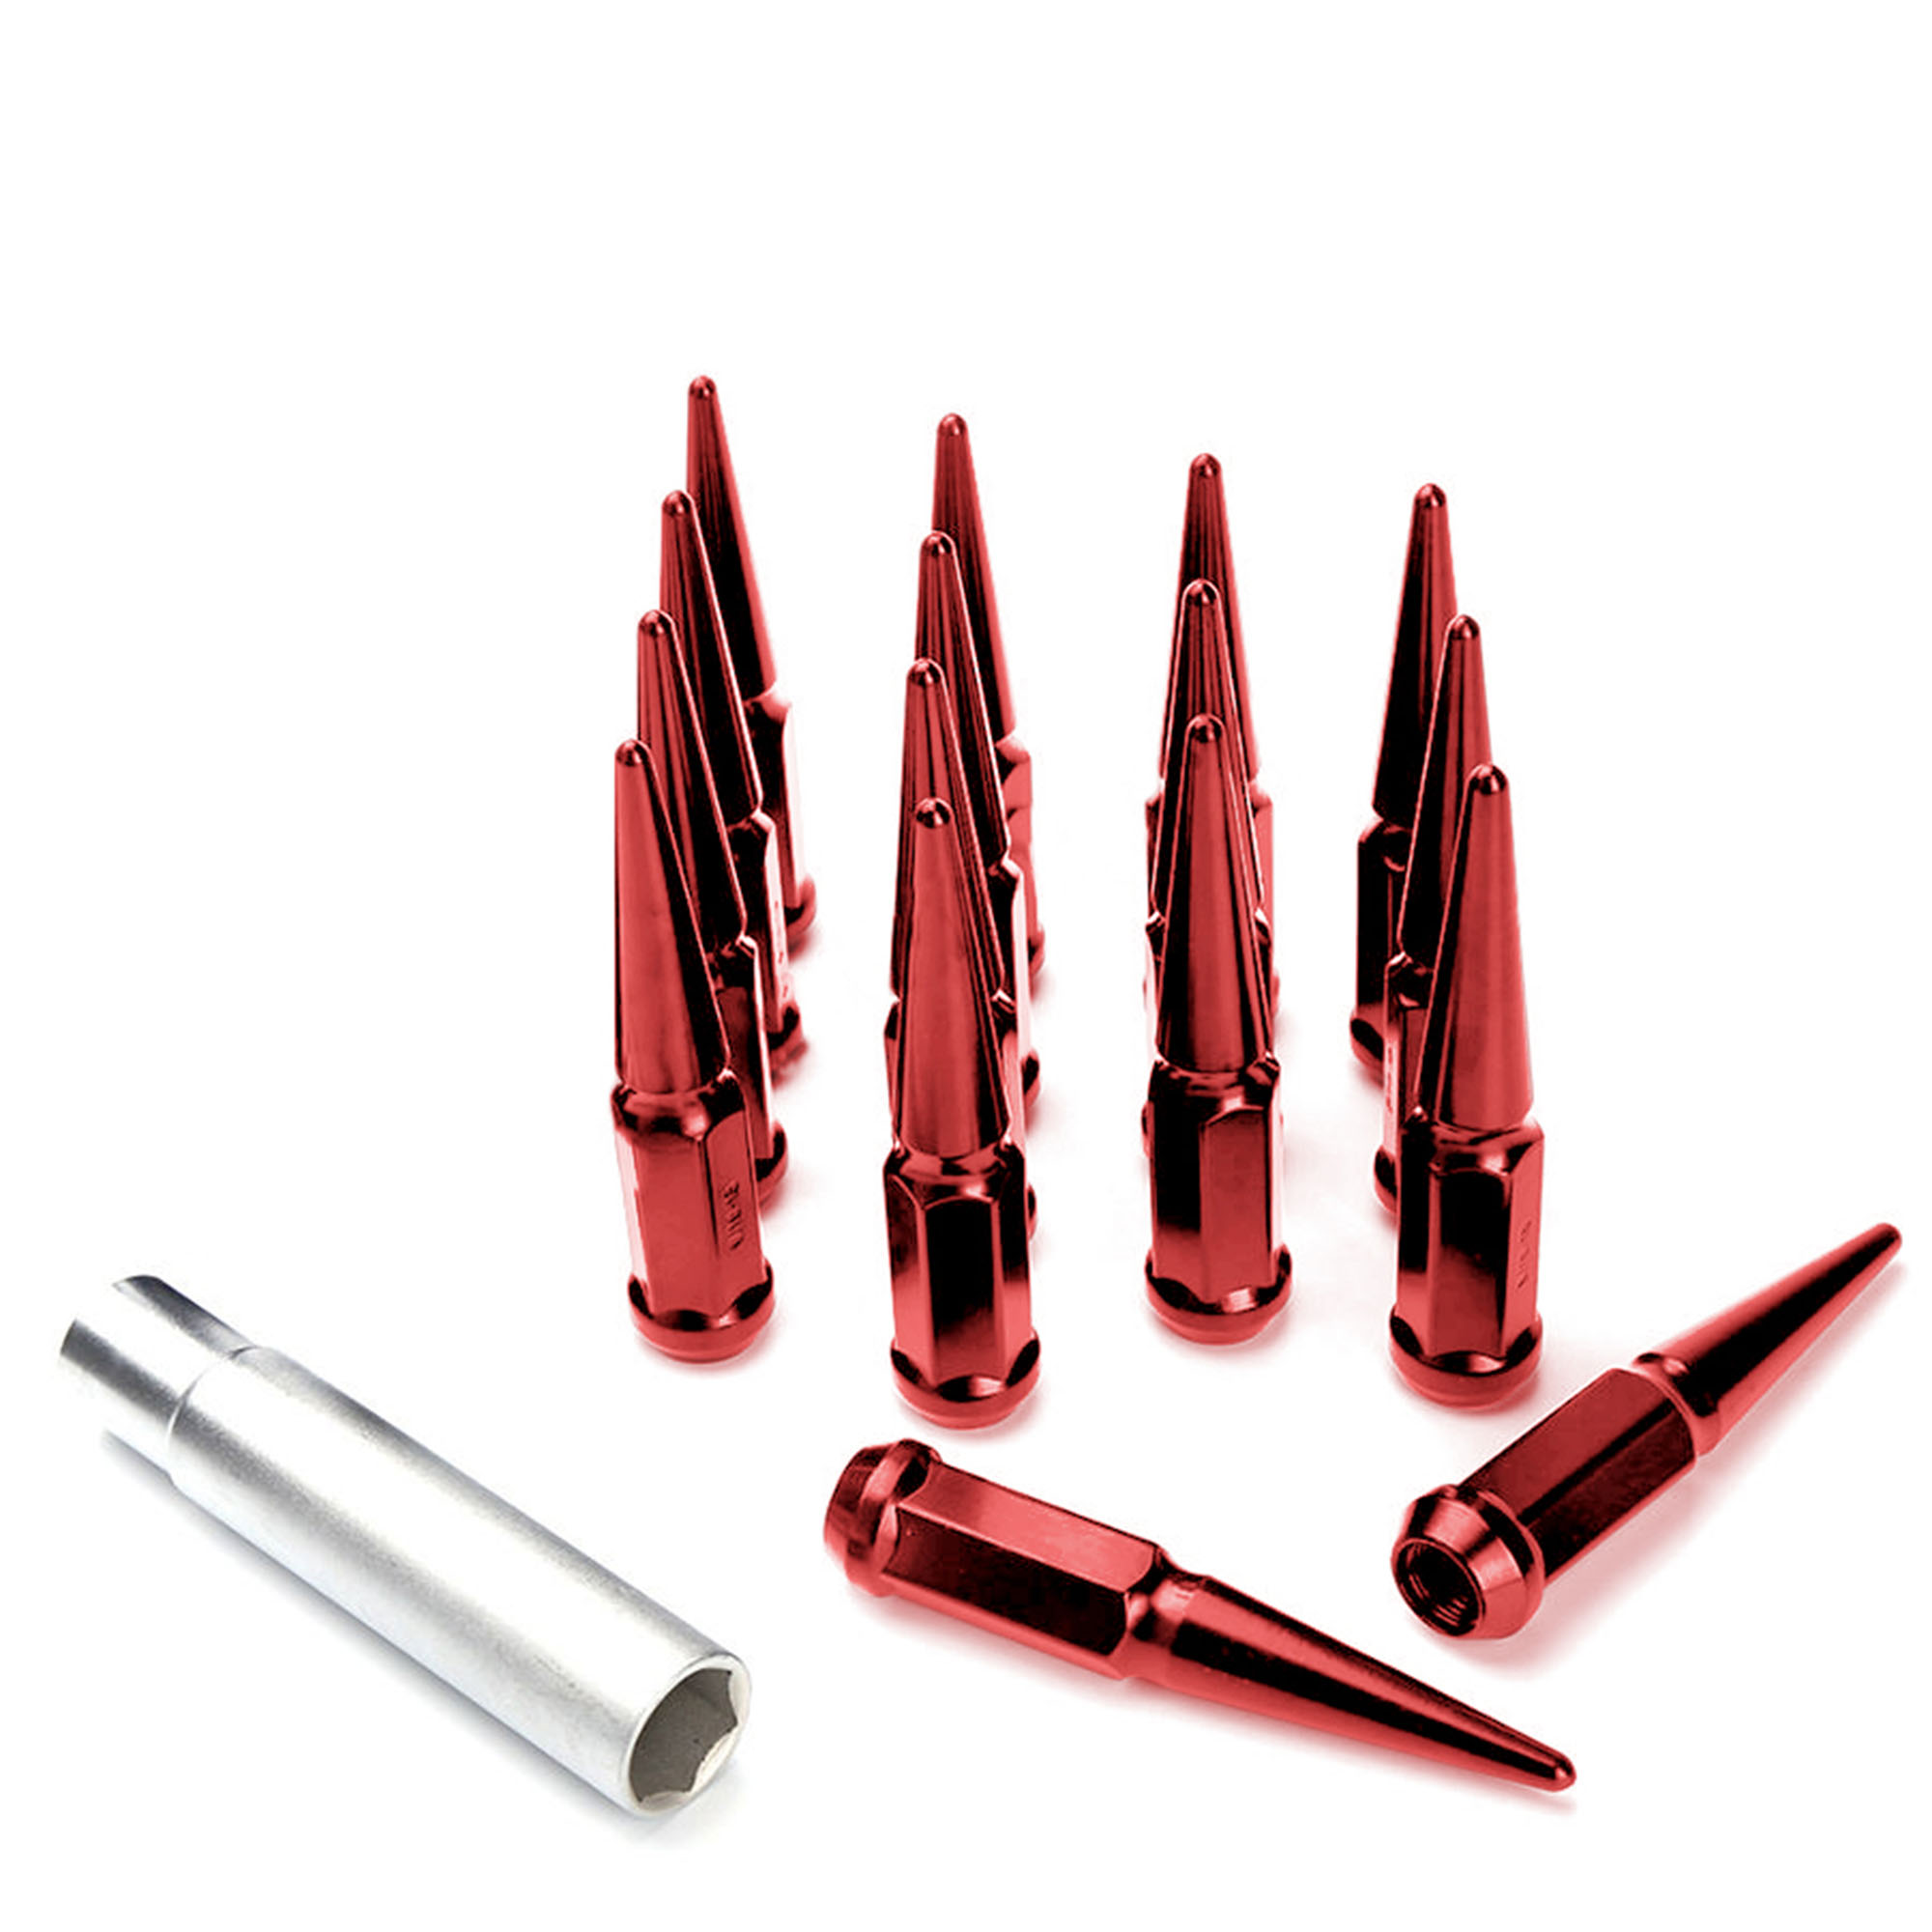 """16pc Premium Chrome SPIKED 14x2 Extended Lug Nuts 4.4"""" OFF-ROAD SPIKE Metal Lugz Nut w/Key"""